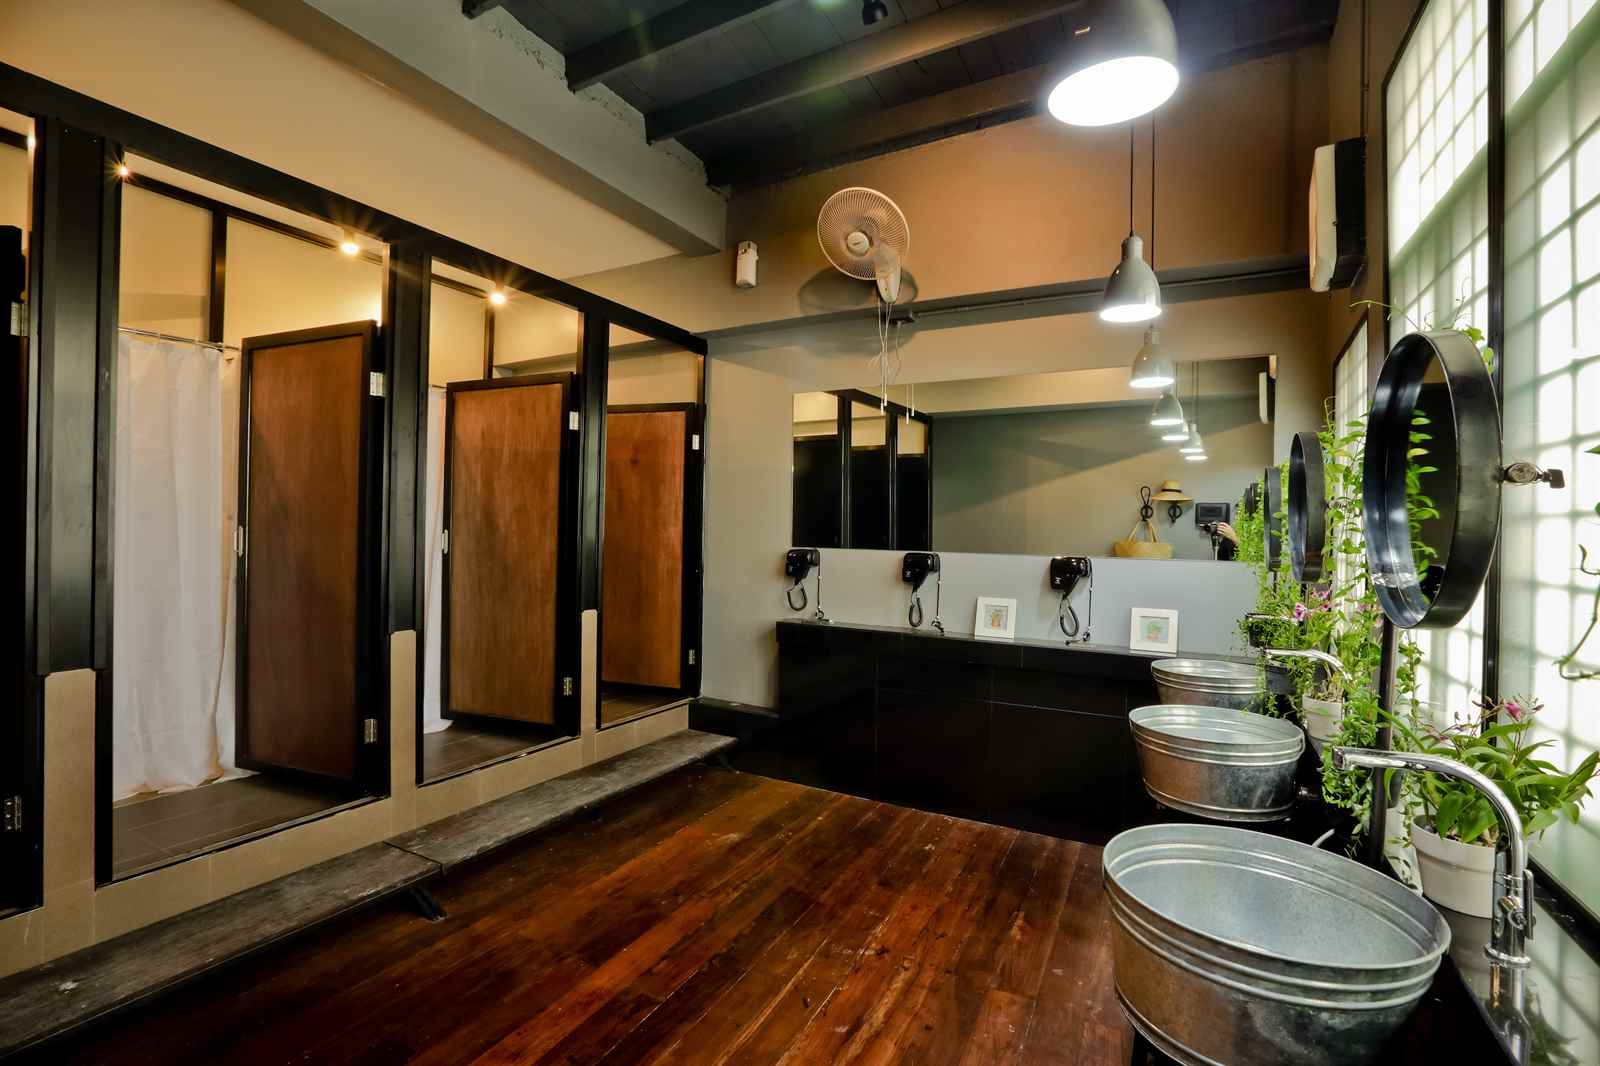 Bed Bangkok Hostel Reviews